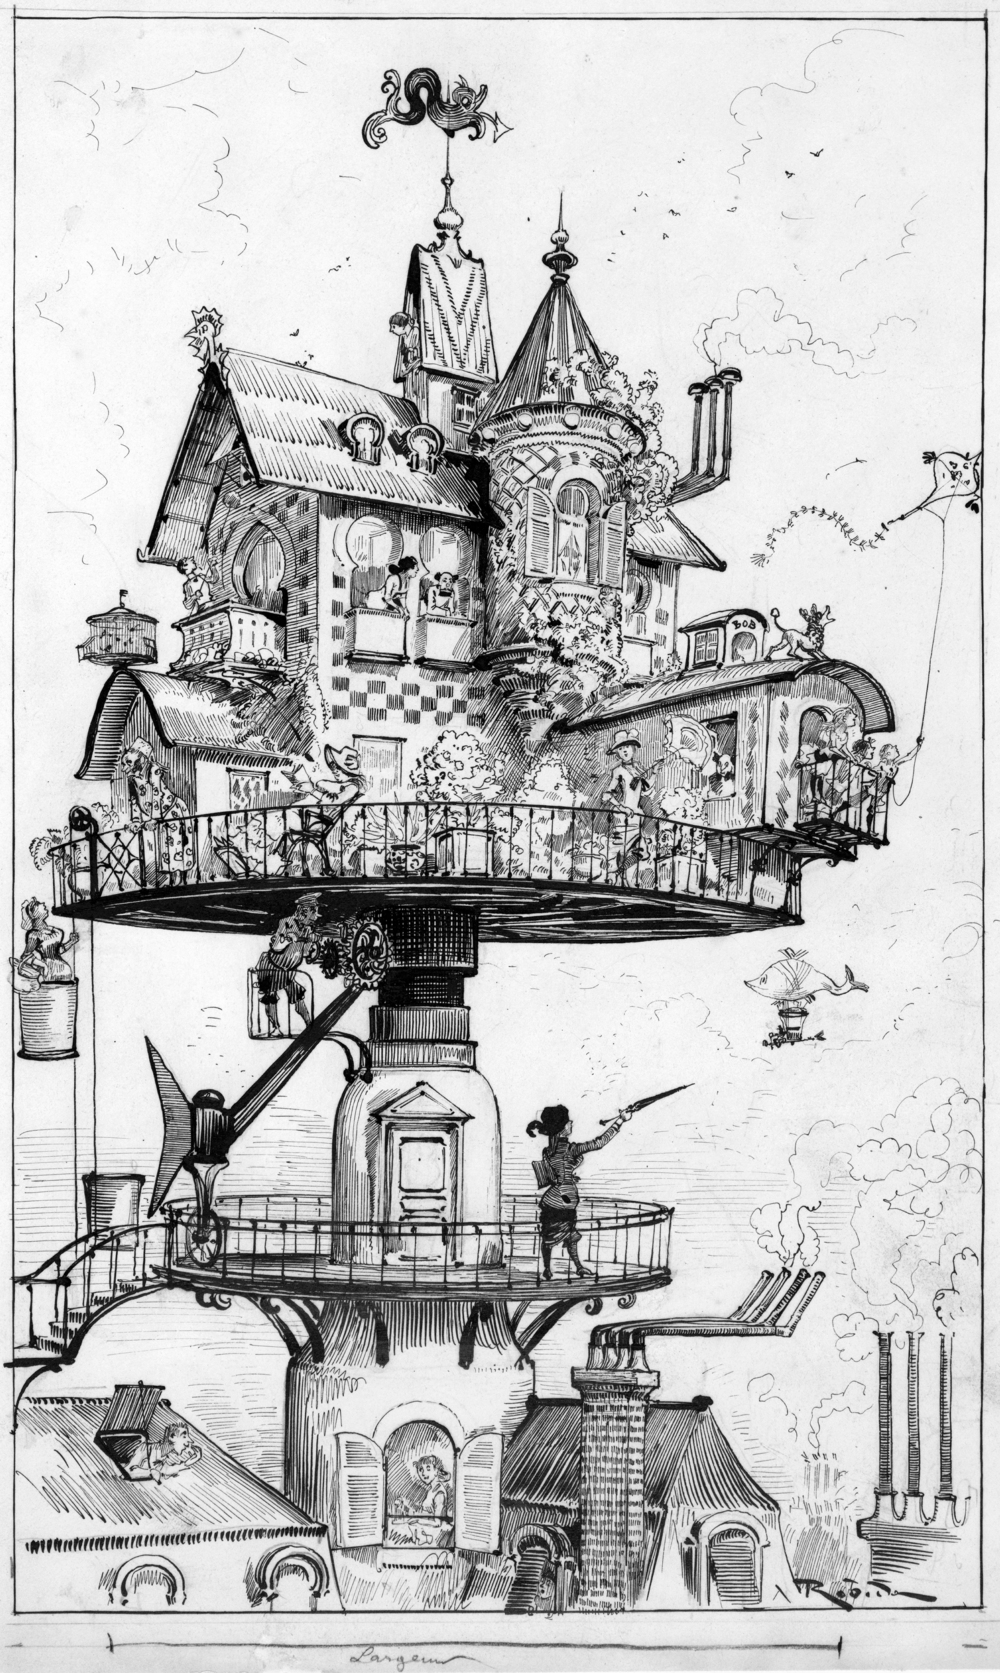 """Maison tournante aérienne"" (aerial rotating house) by Albert Robida (ca. 1883). A drawing for his book Le Vingtième Siècle, a 19th century conception of life in the 20th century."